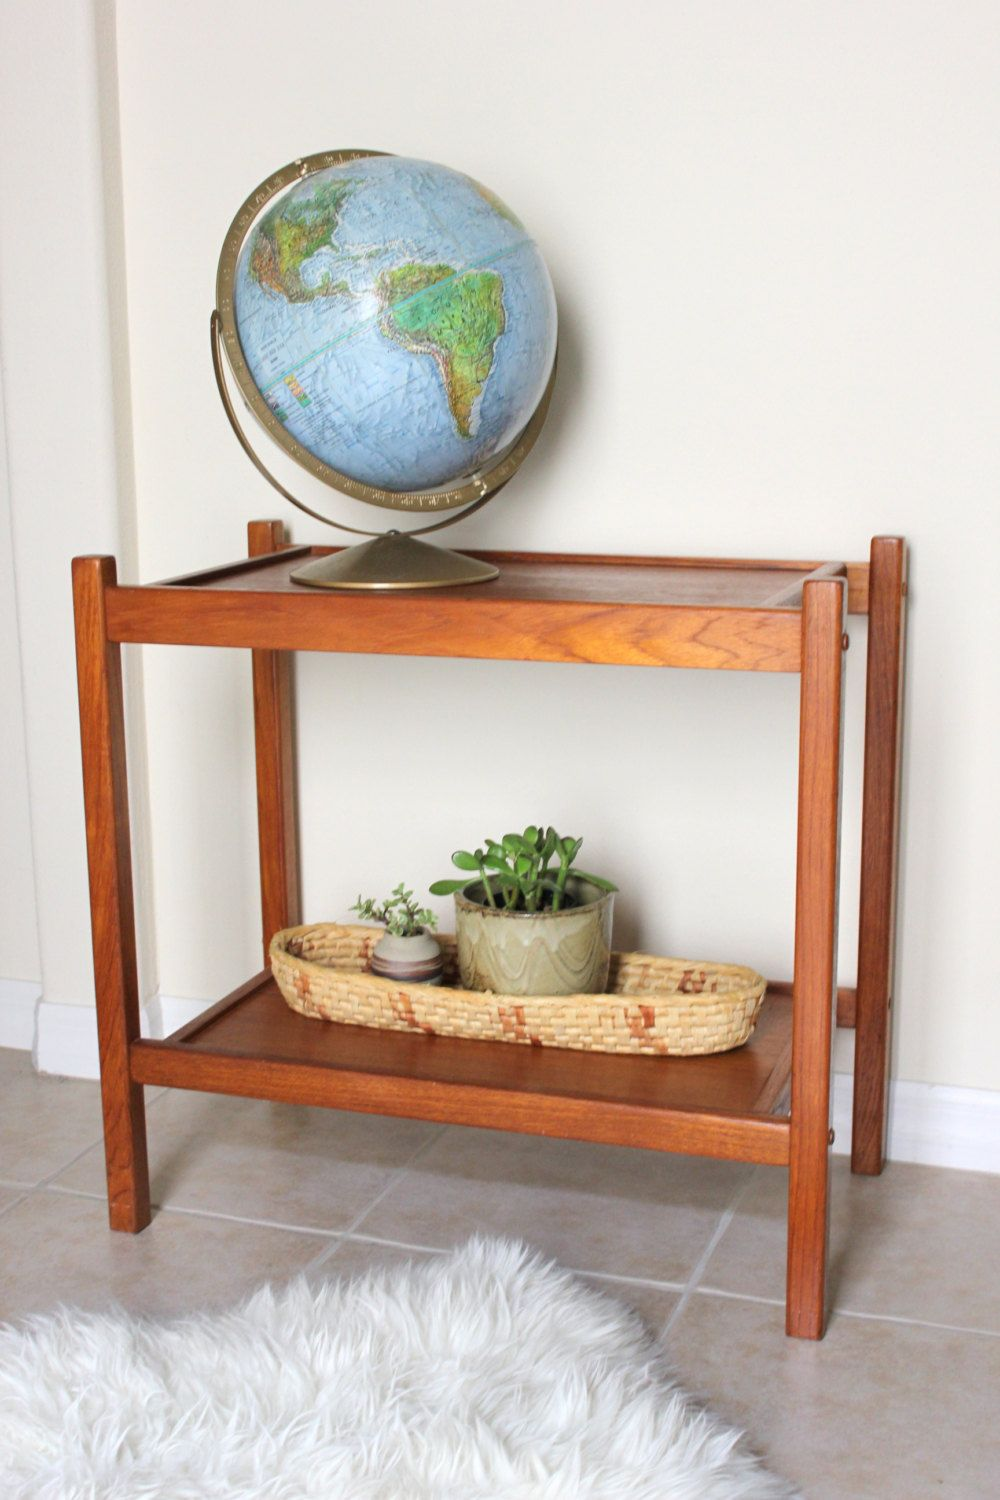 Mid century teak entry console table plant stand book shelf by mid century teak entry console table plant stand book shelf by kollektive on geotapseo Image collections